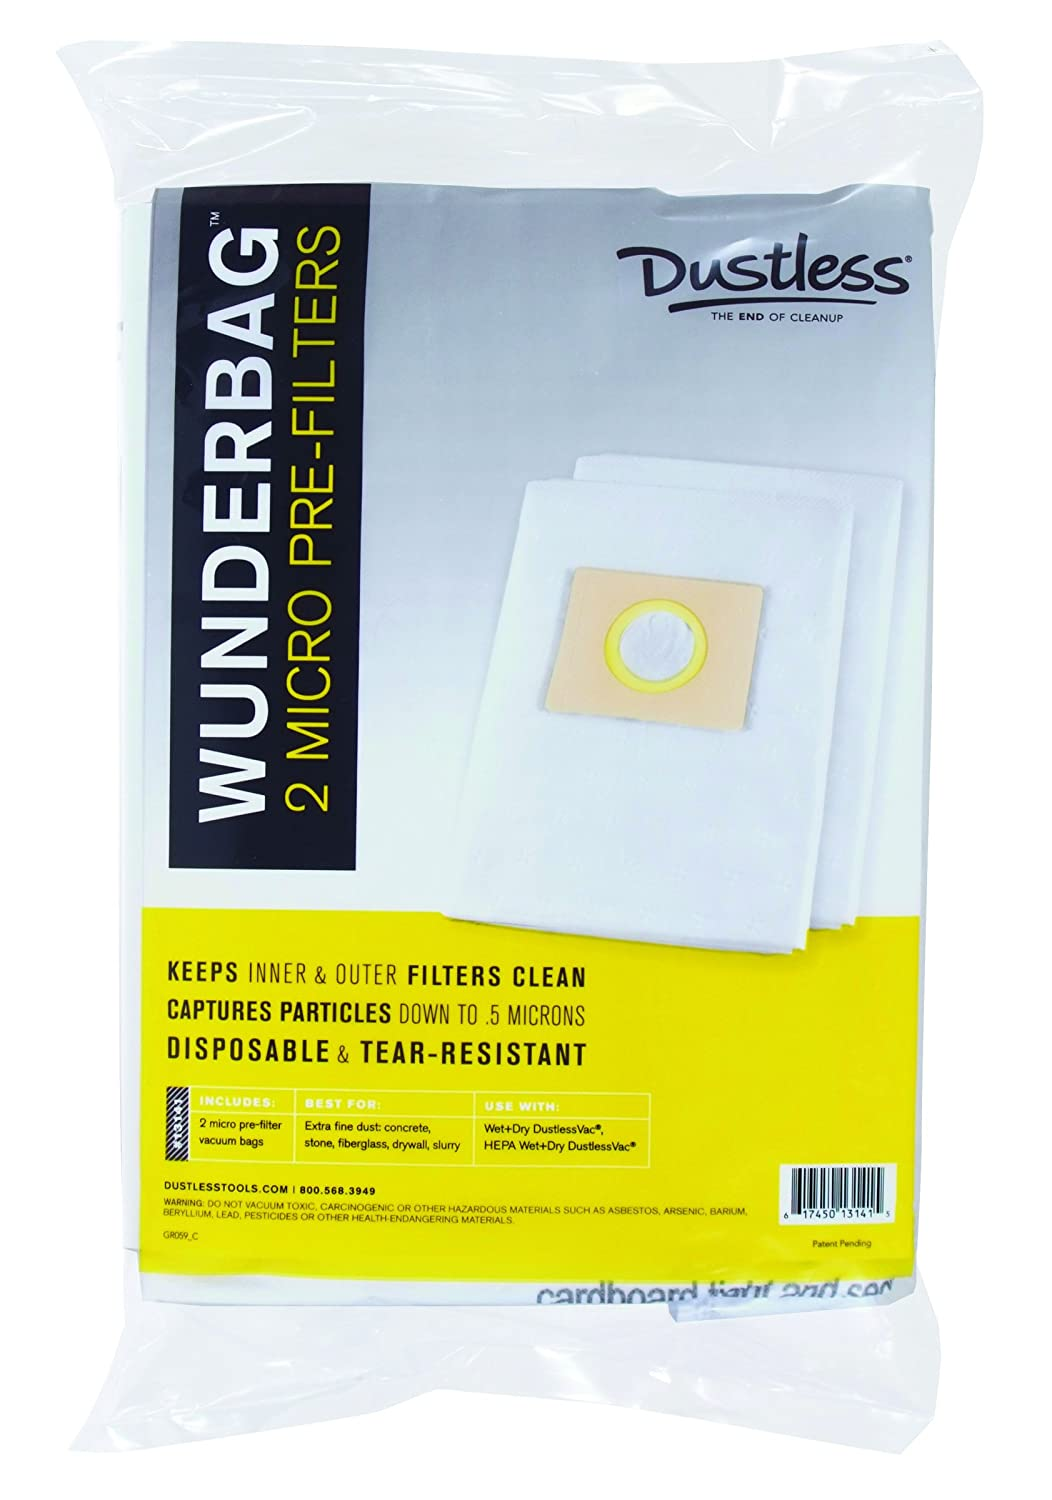 Wunderbag Universal High Capacity Pre-Filters for Wet Dry Vacuums, 2 Pack Dustless Technologies 13141